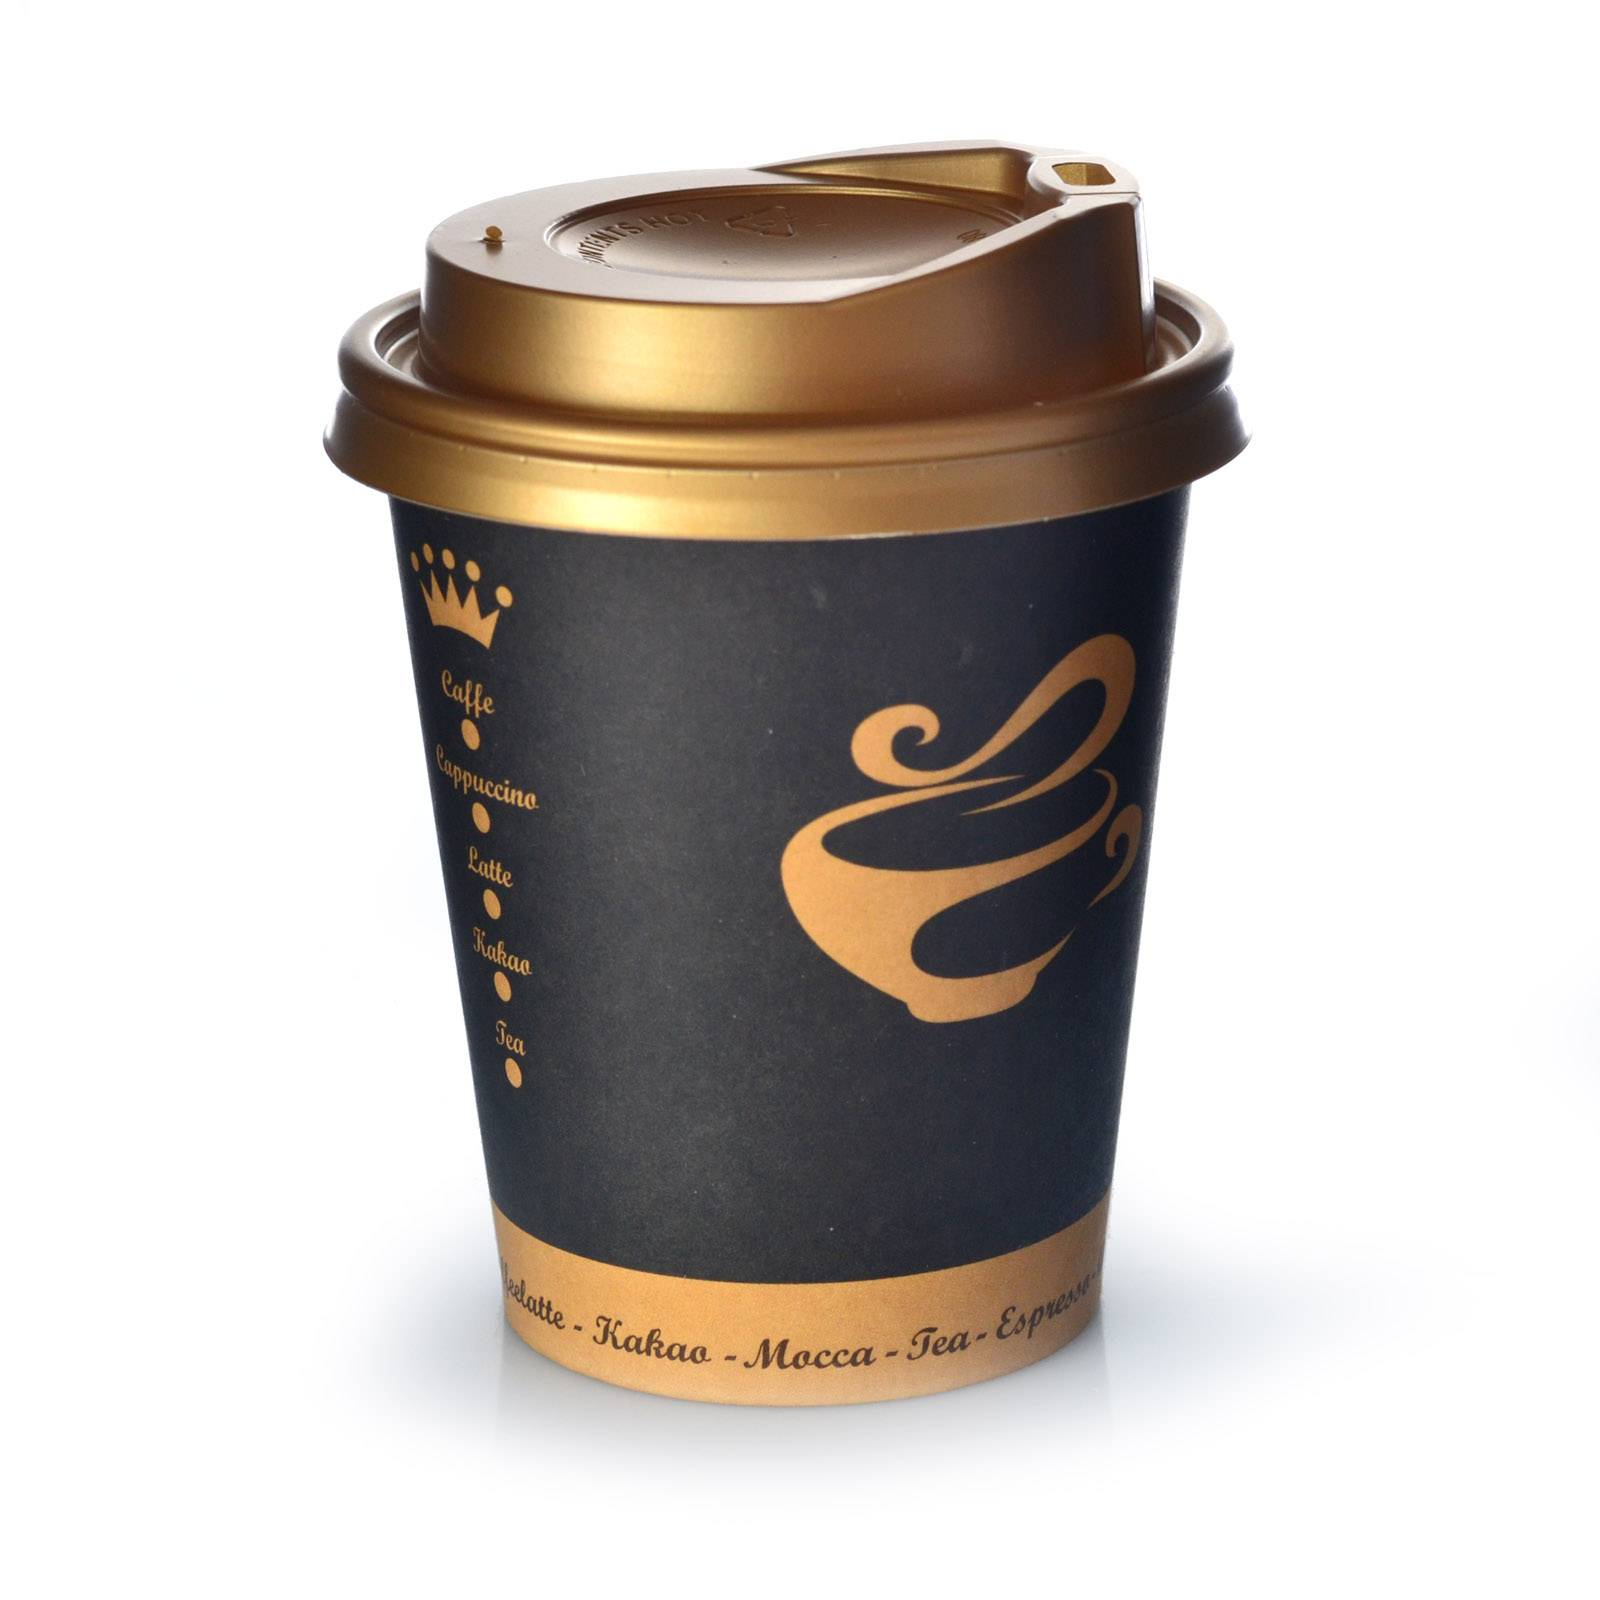 Coffee to go becher golden cup 0 2l mit deckel gold 200 stk for Coffee to go